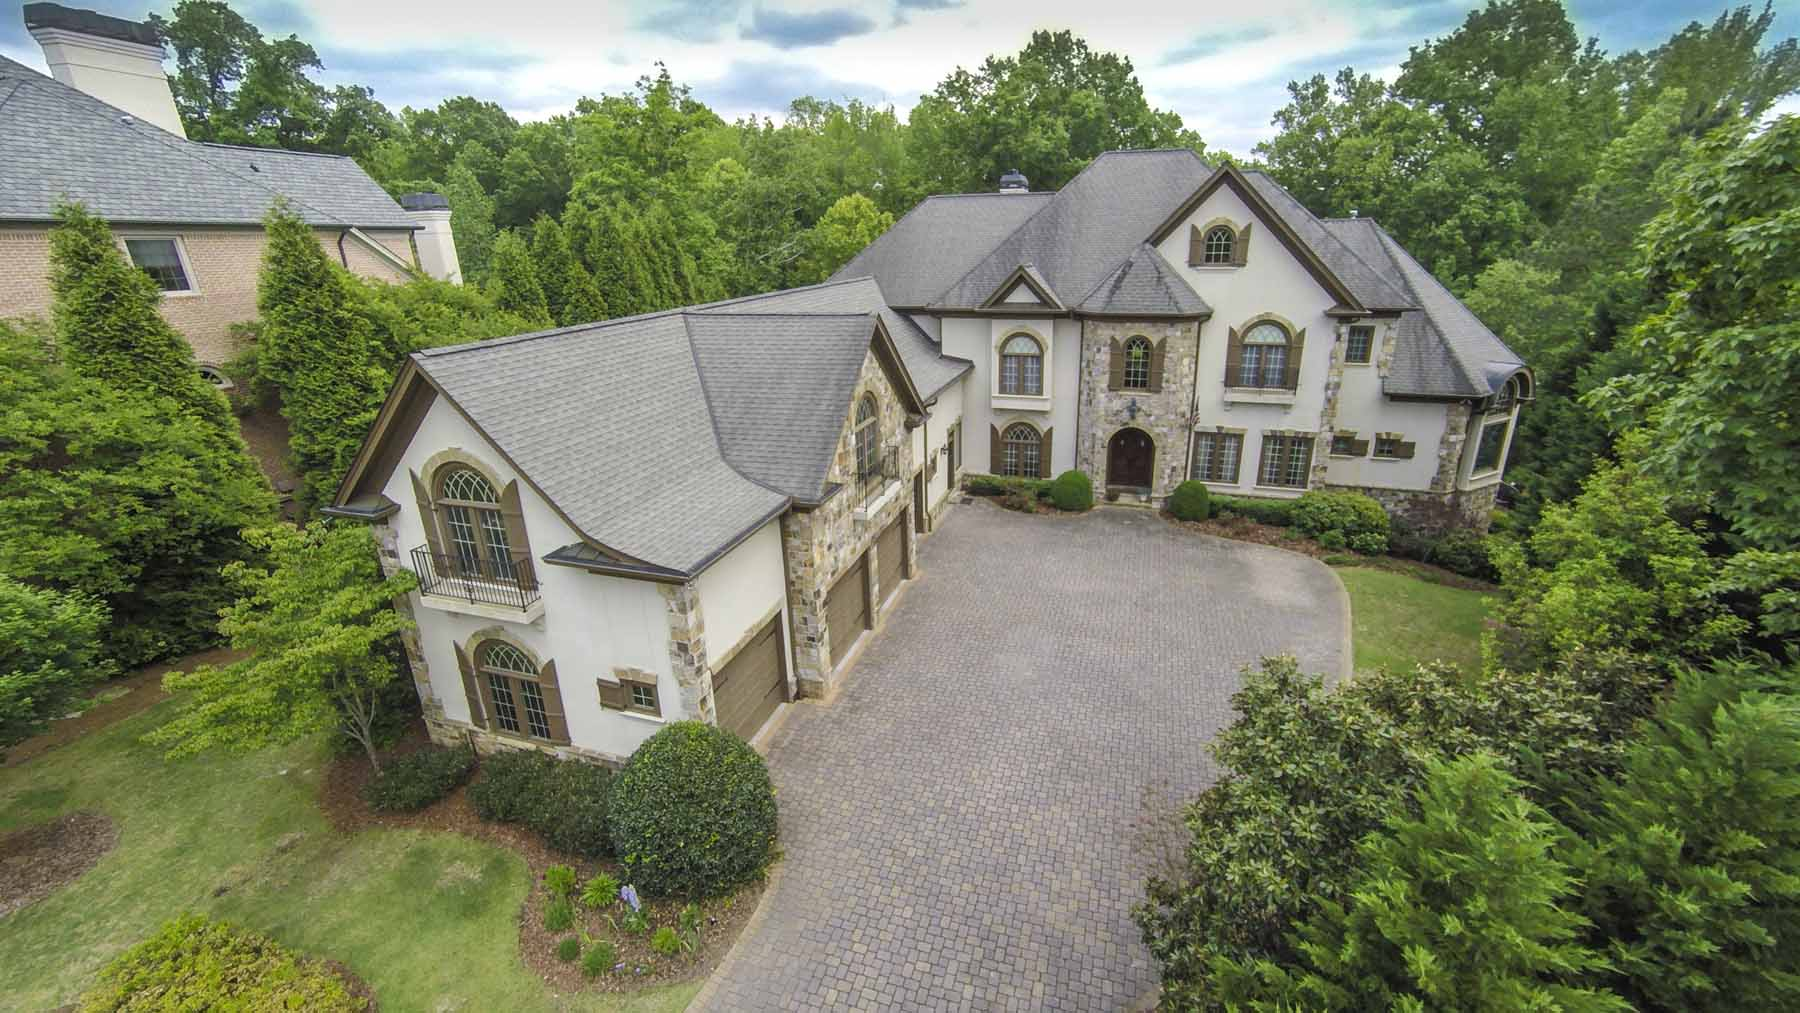 一戸建て のために 売買 アット Stunning Home Meets Modern Updates on the Sparkling Chattahoochee River 500 Covington Cove Alpharetta, ジョージア 30022 アメリカ合衆国